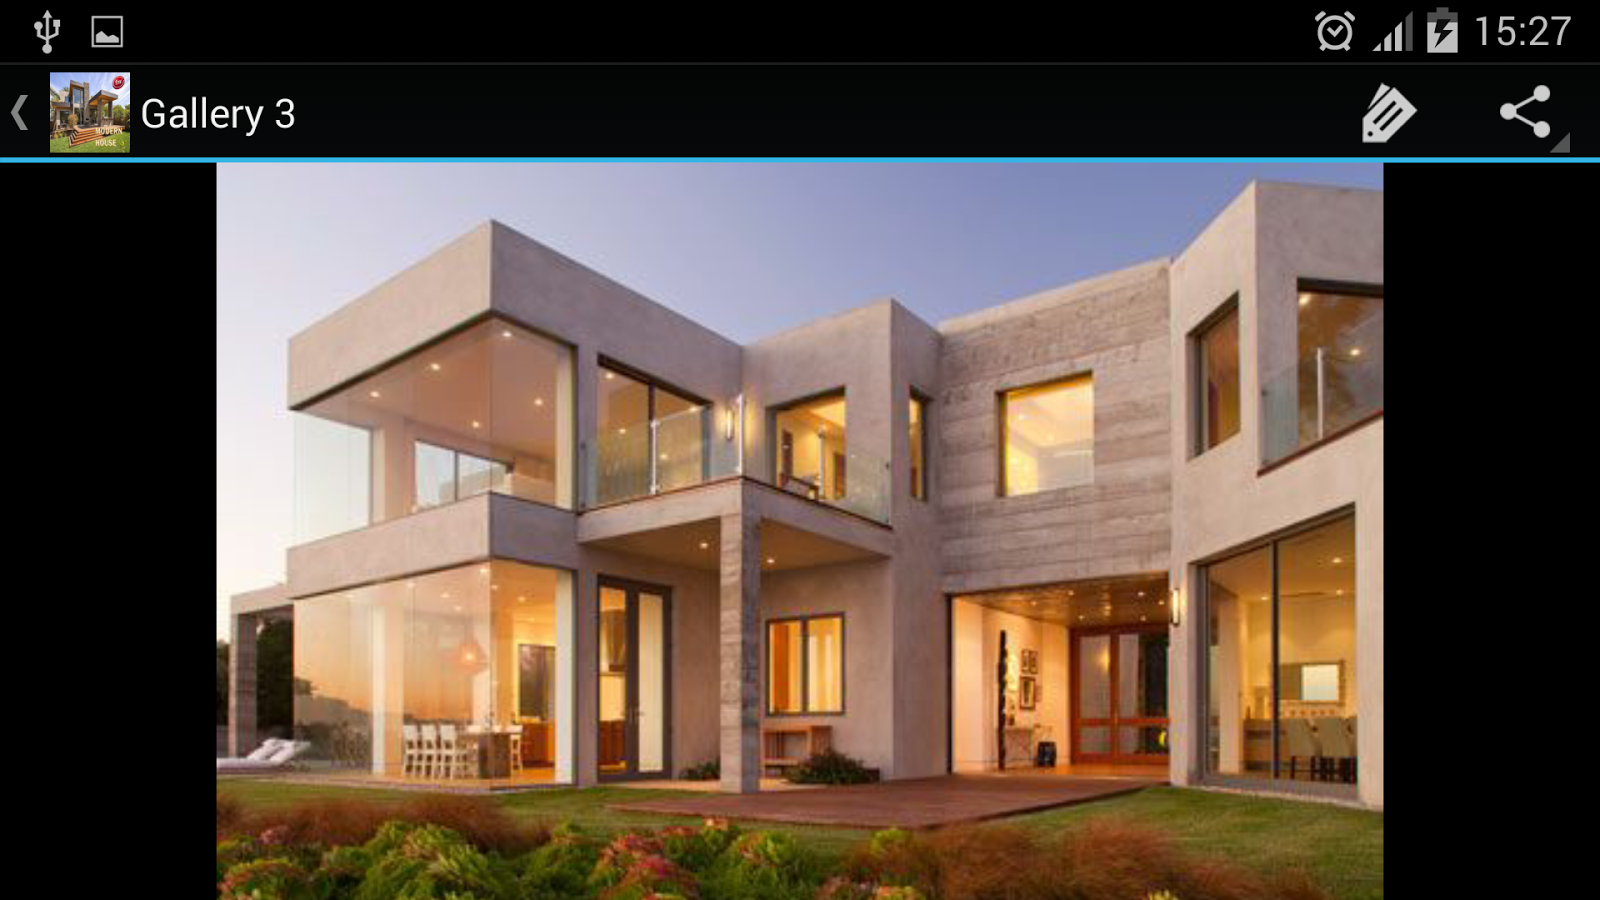 Modern House Designs Android Apps on Google Play